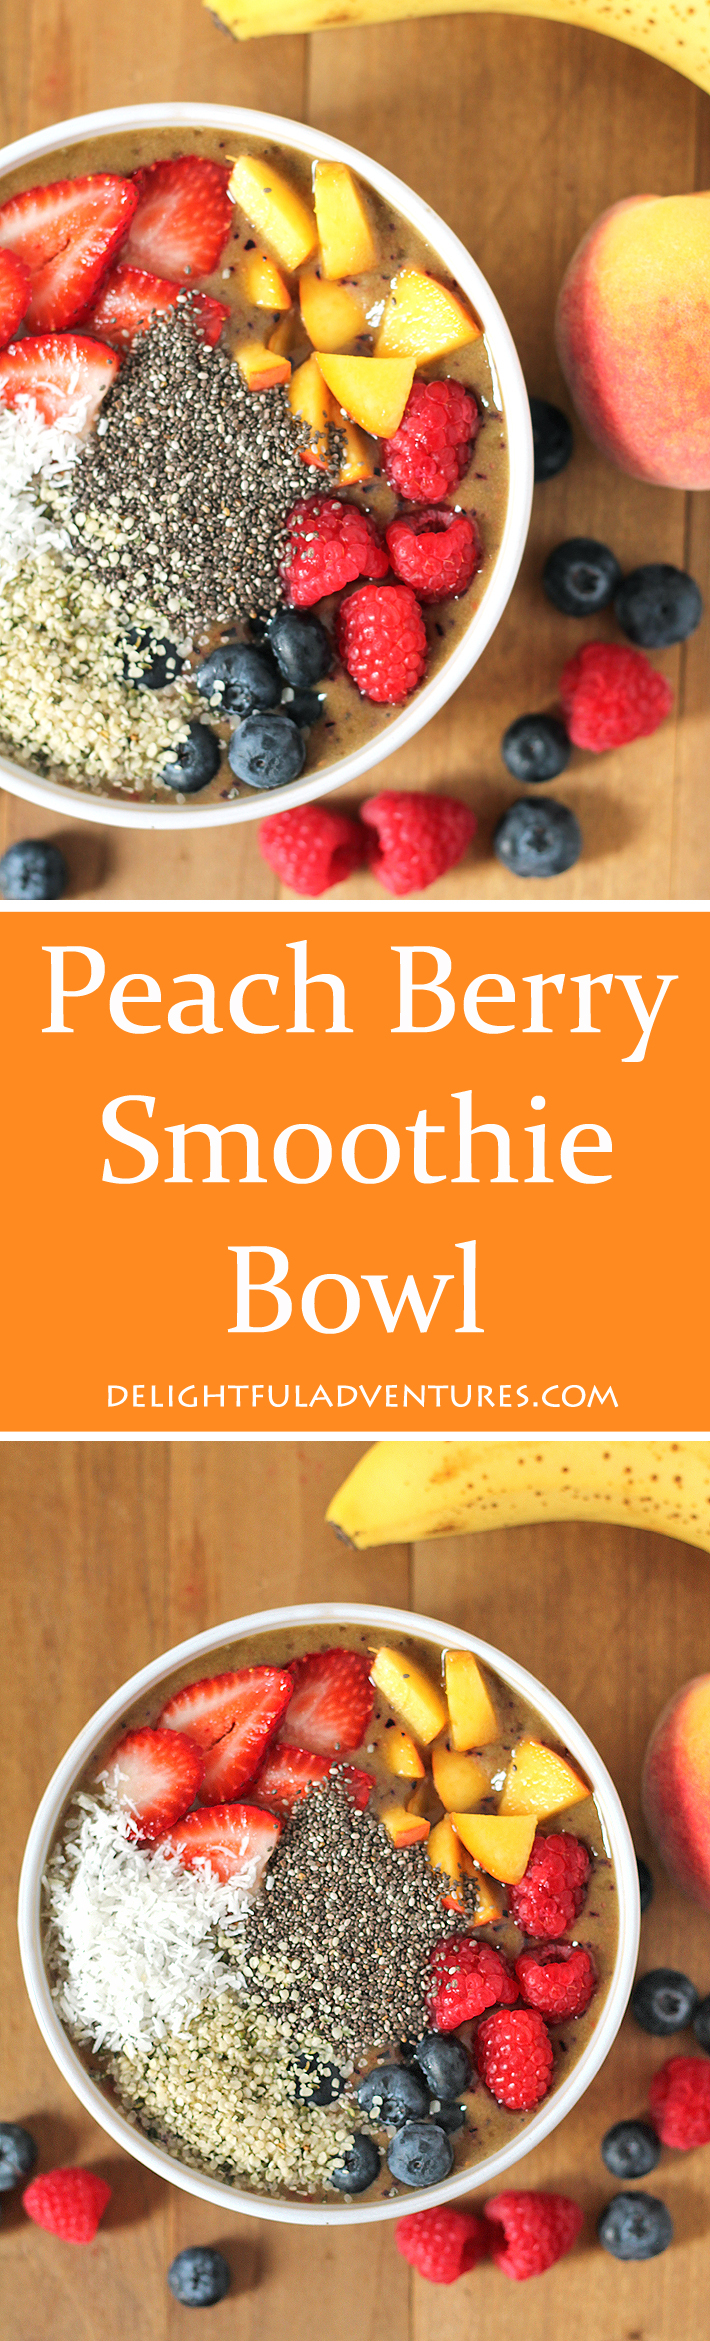 Loaded with delicious berries, and a sweet ripe peaches, this Peach Berry Smoothie Bowl can be topped with whatever you like to suit your taste.